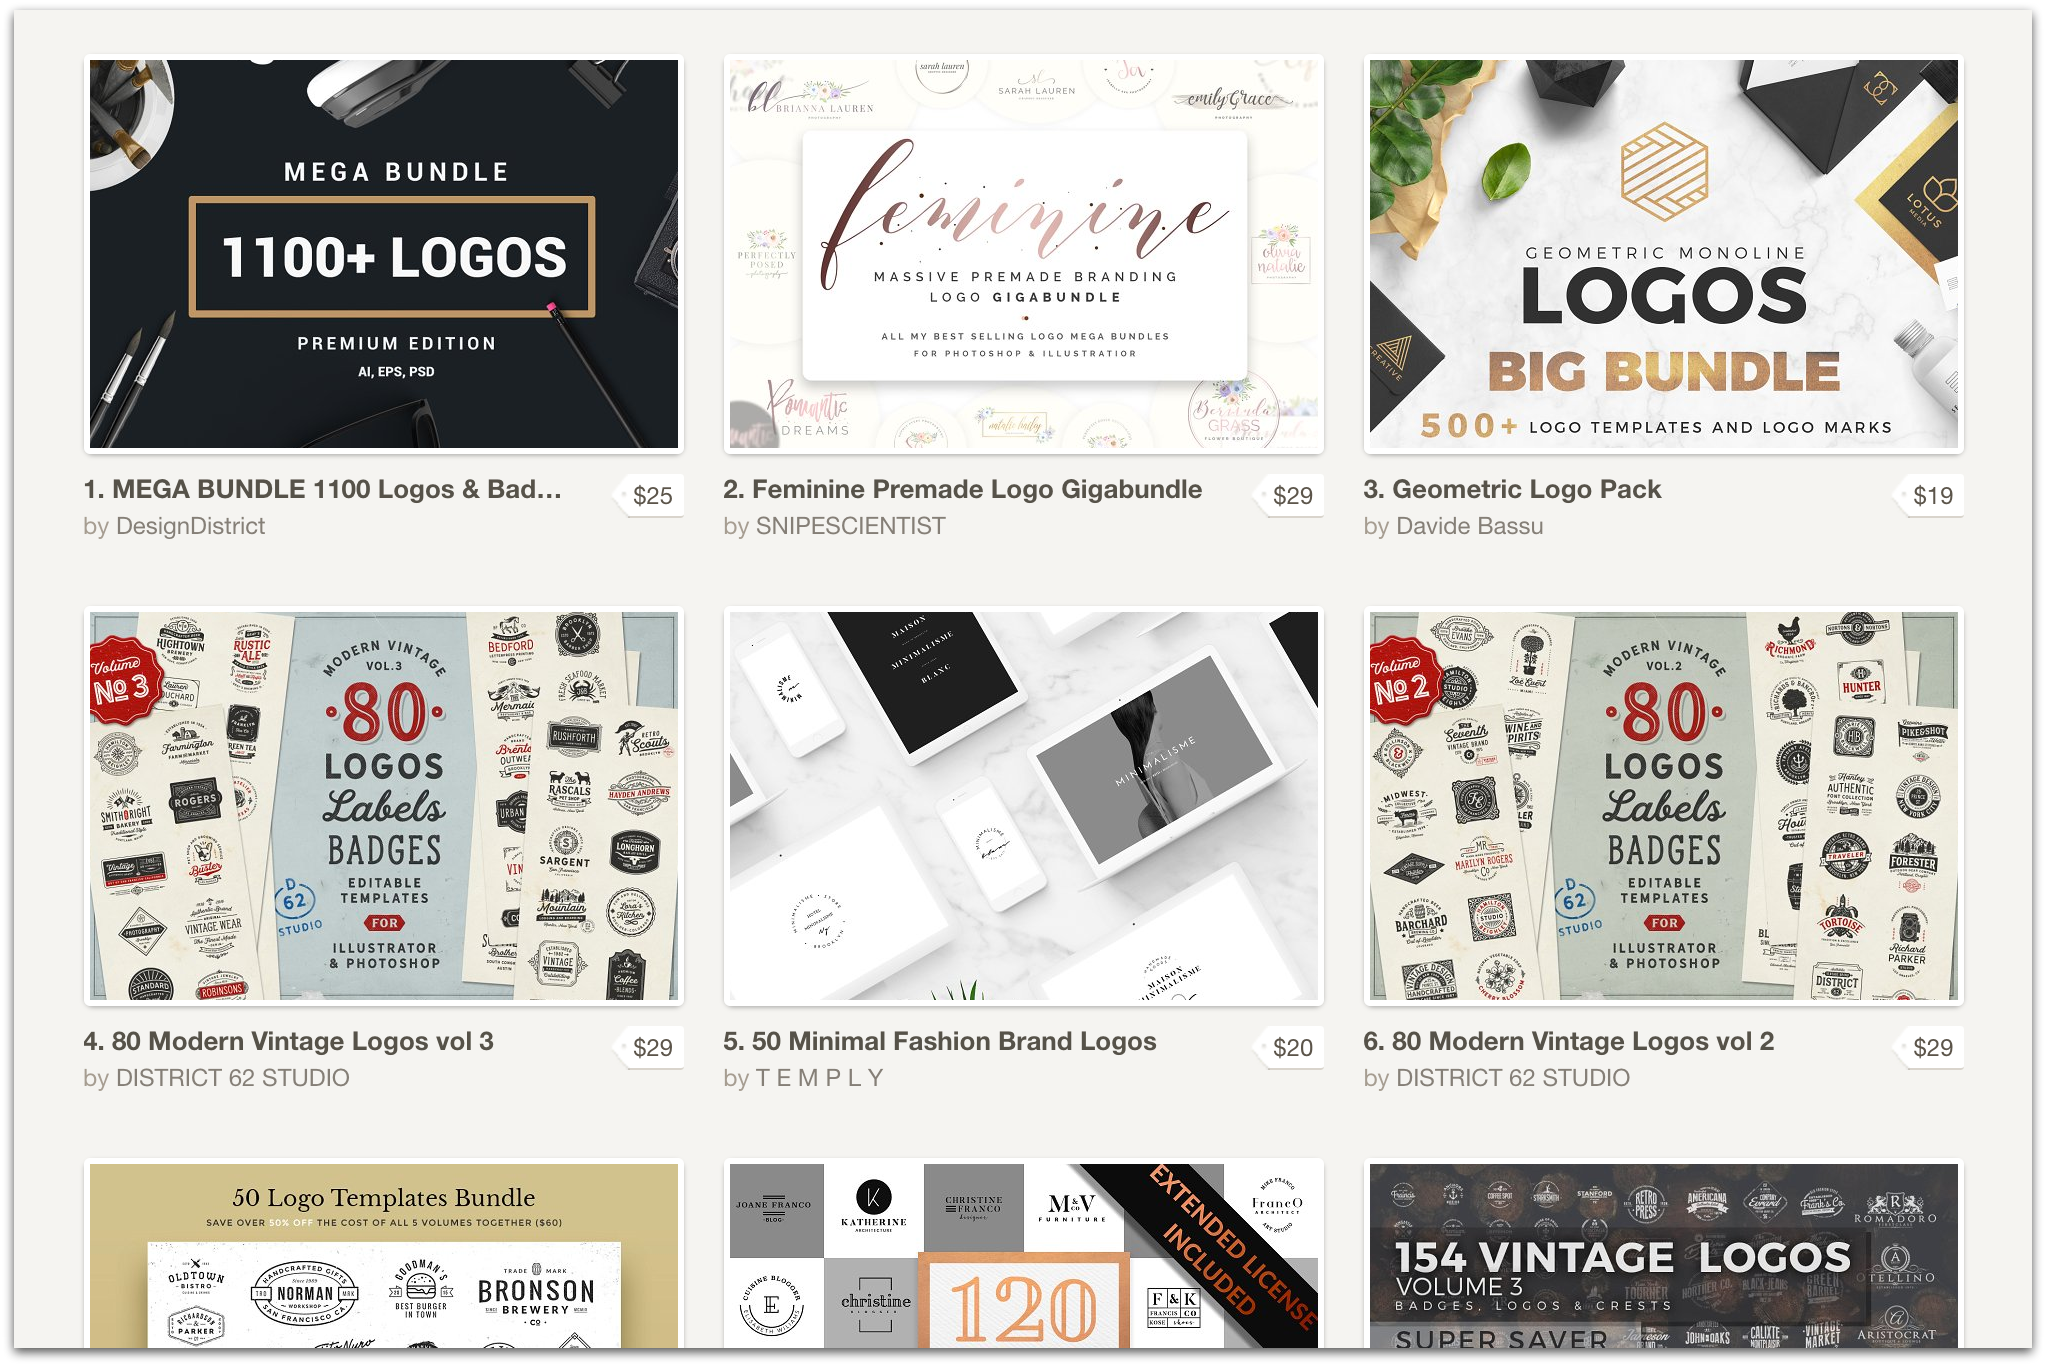 Part 3 - _IMAGE - Design template from Creative Market_.png